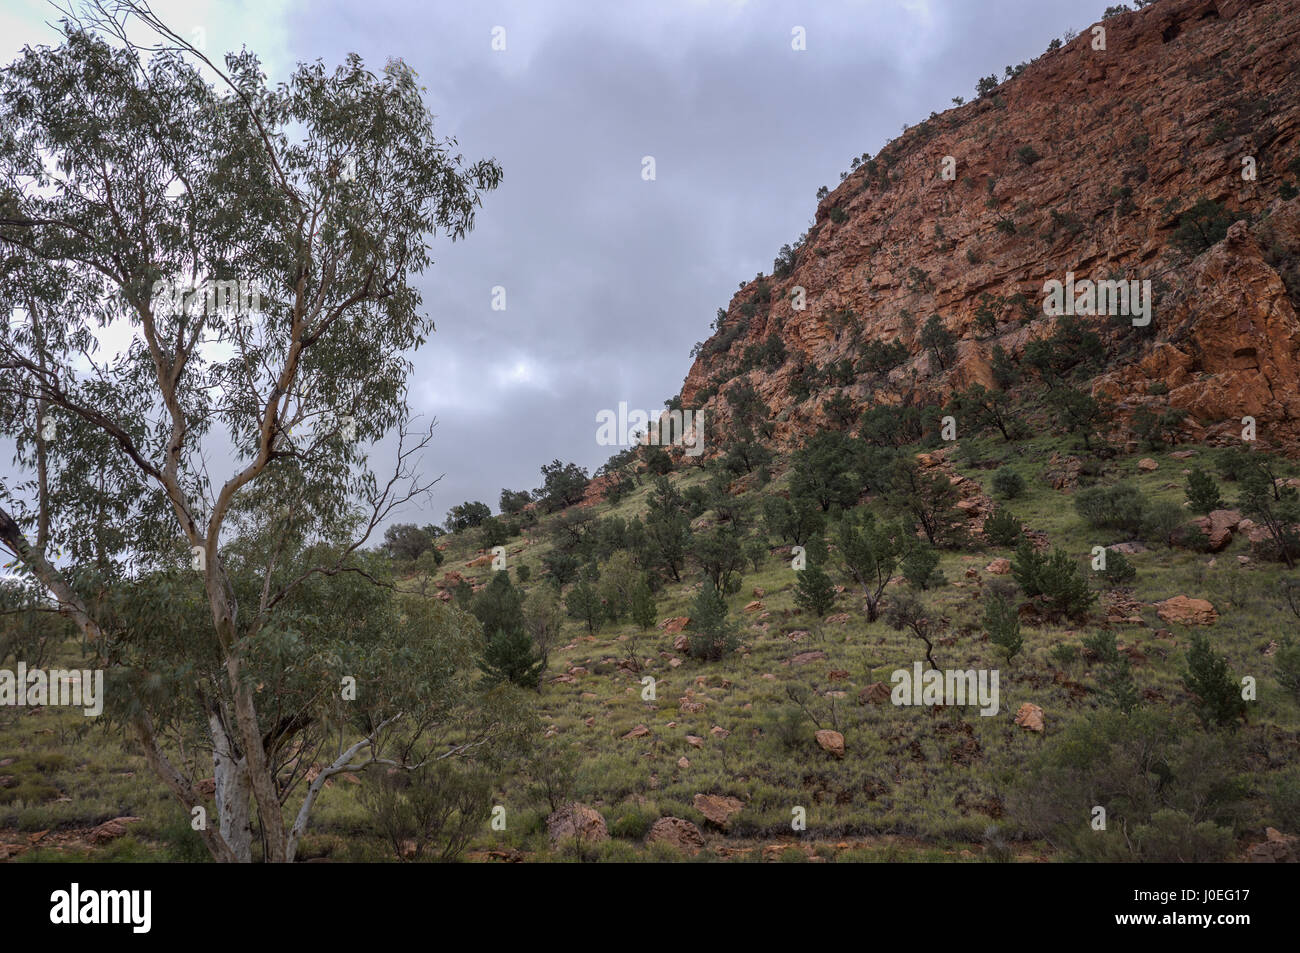 Alice springs Simpsons Gap Northern Territory - Stock Image